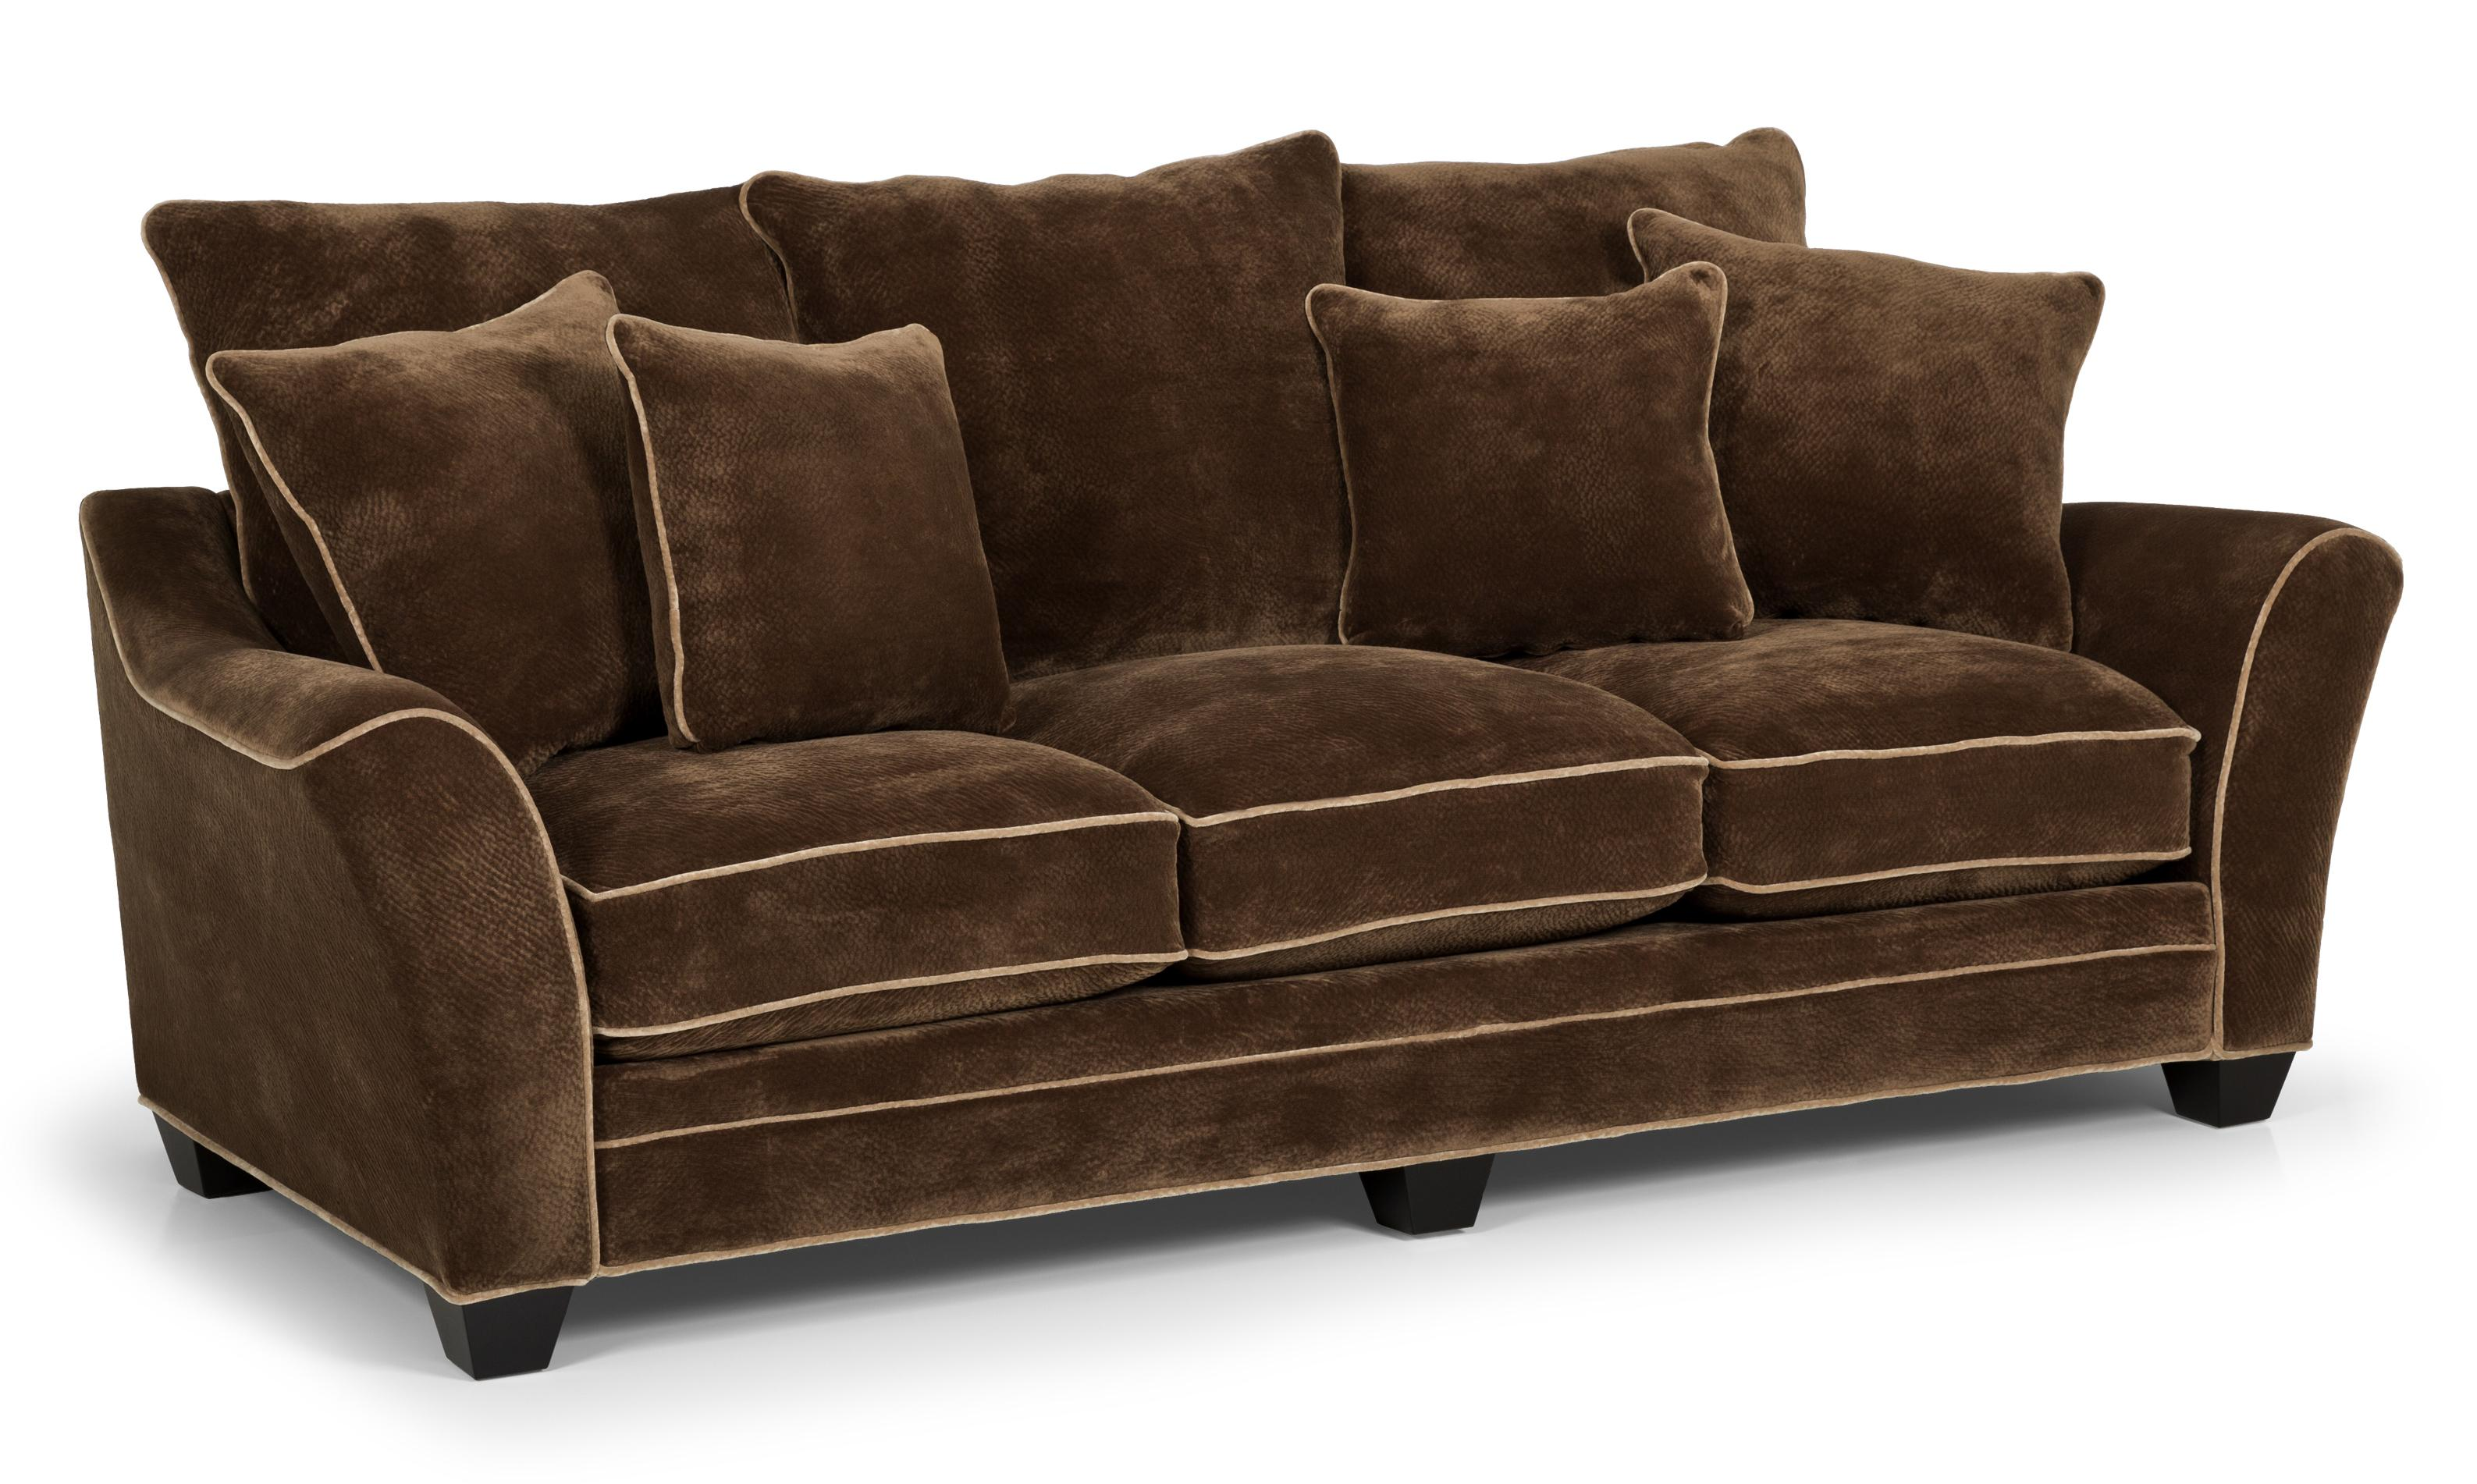 Sofa Welt Stanton 197 Contemporary Scattered Back Sofa With